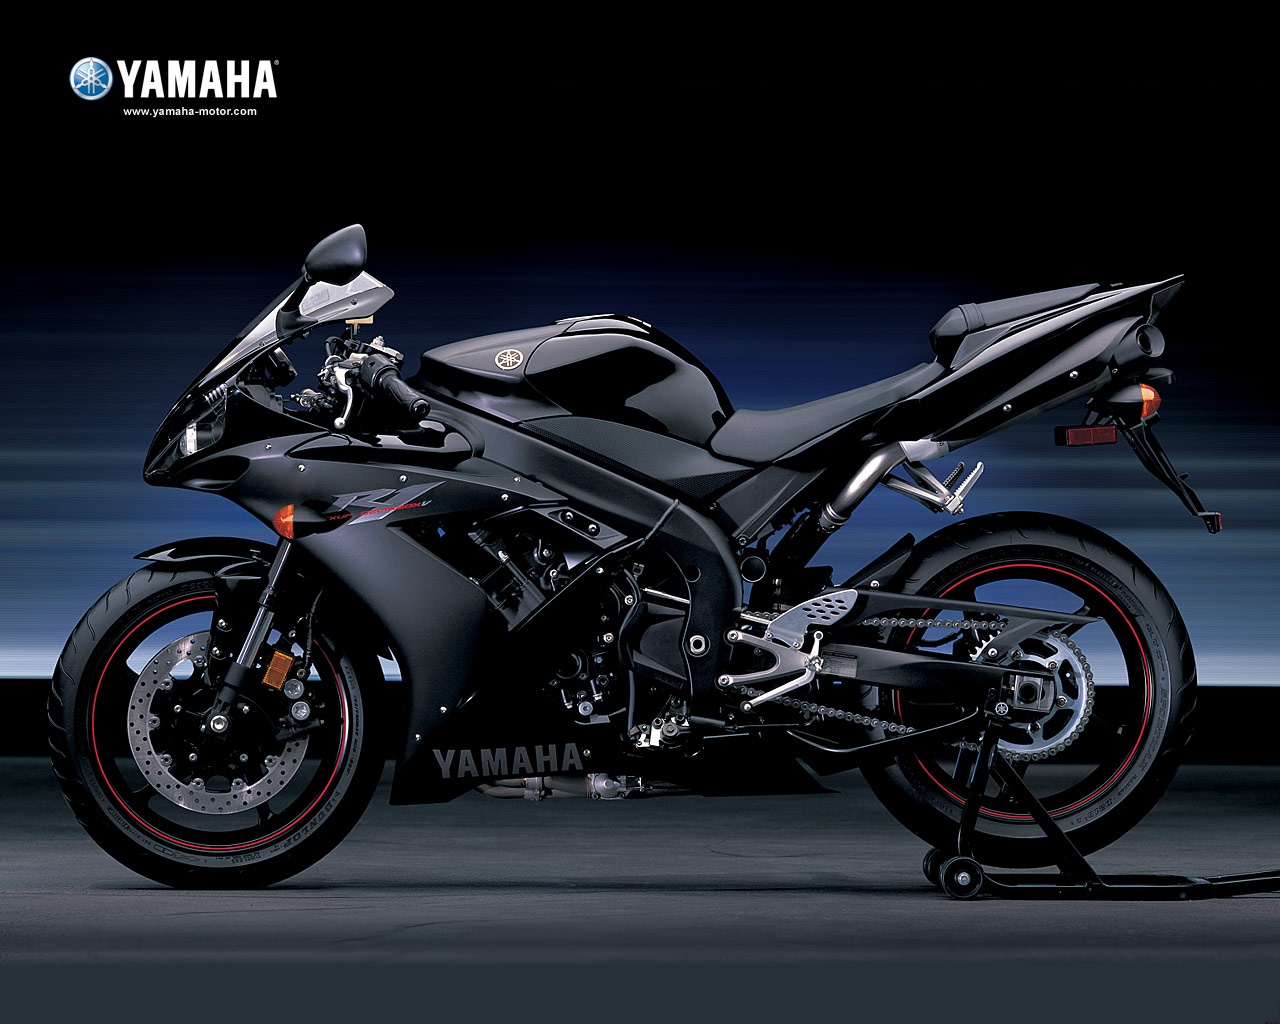 2009 Yamaha R1 Wallpaper 7014 Hd Wallpapers in Bikes   Imagescicom 1280x1024